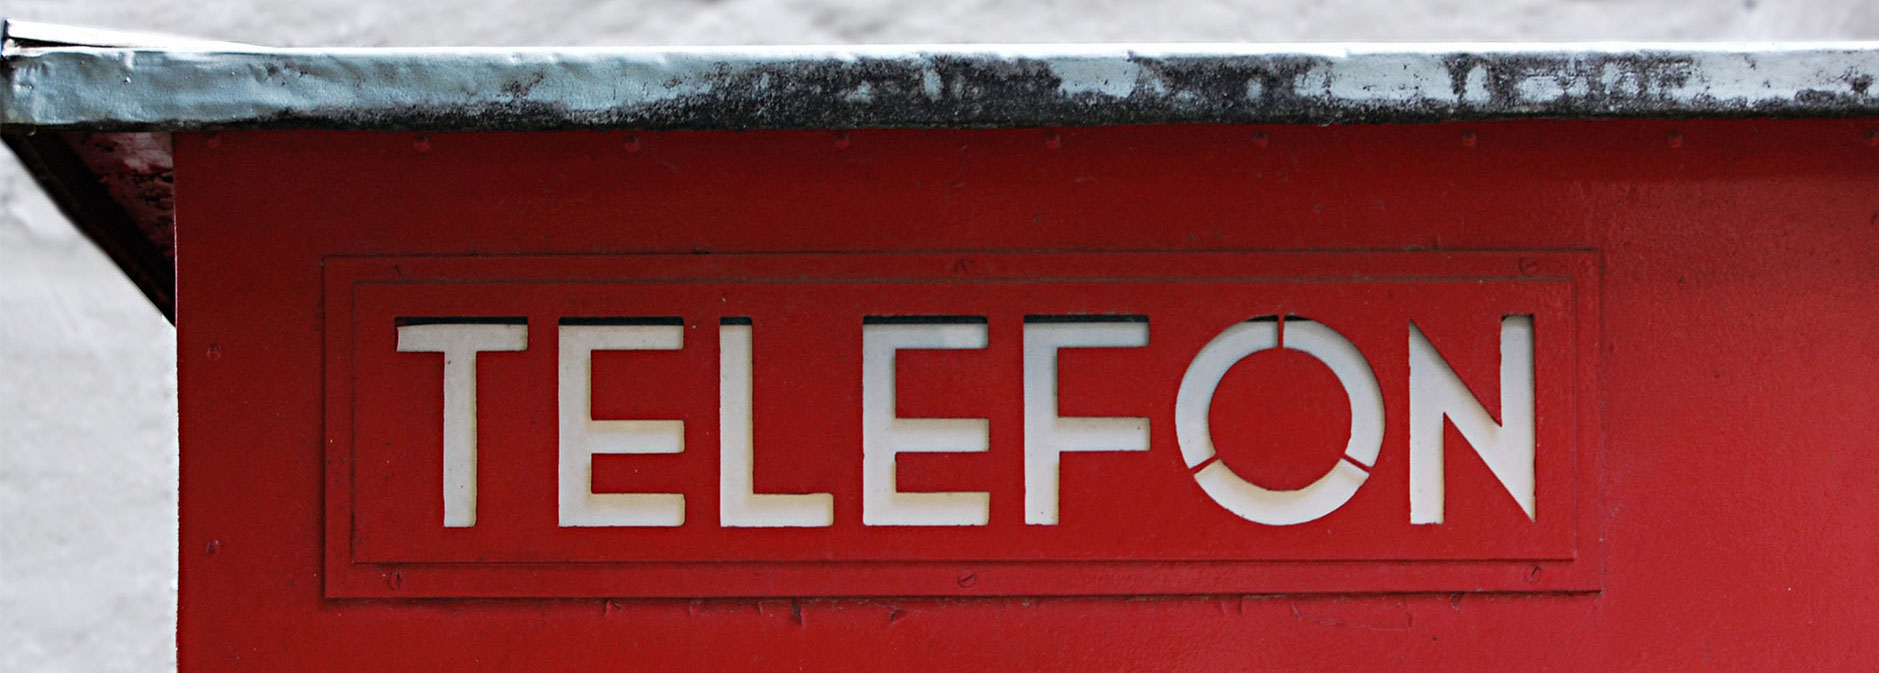 The original die cut lettering on Norway's phone booth (1933)